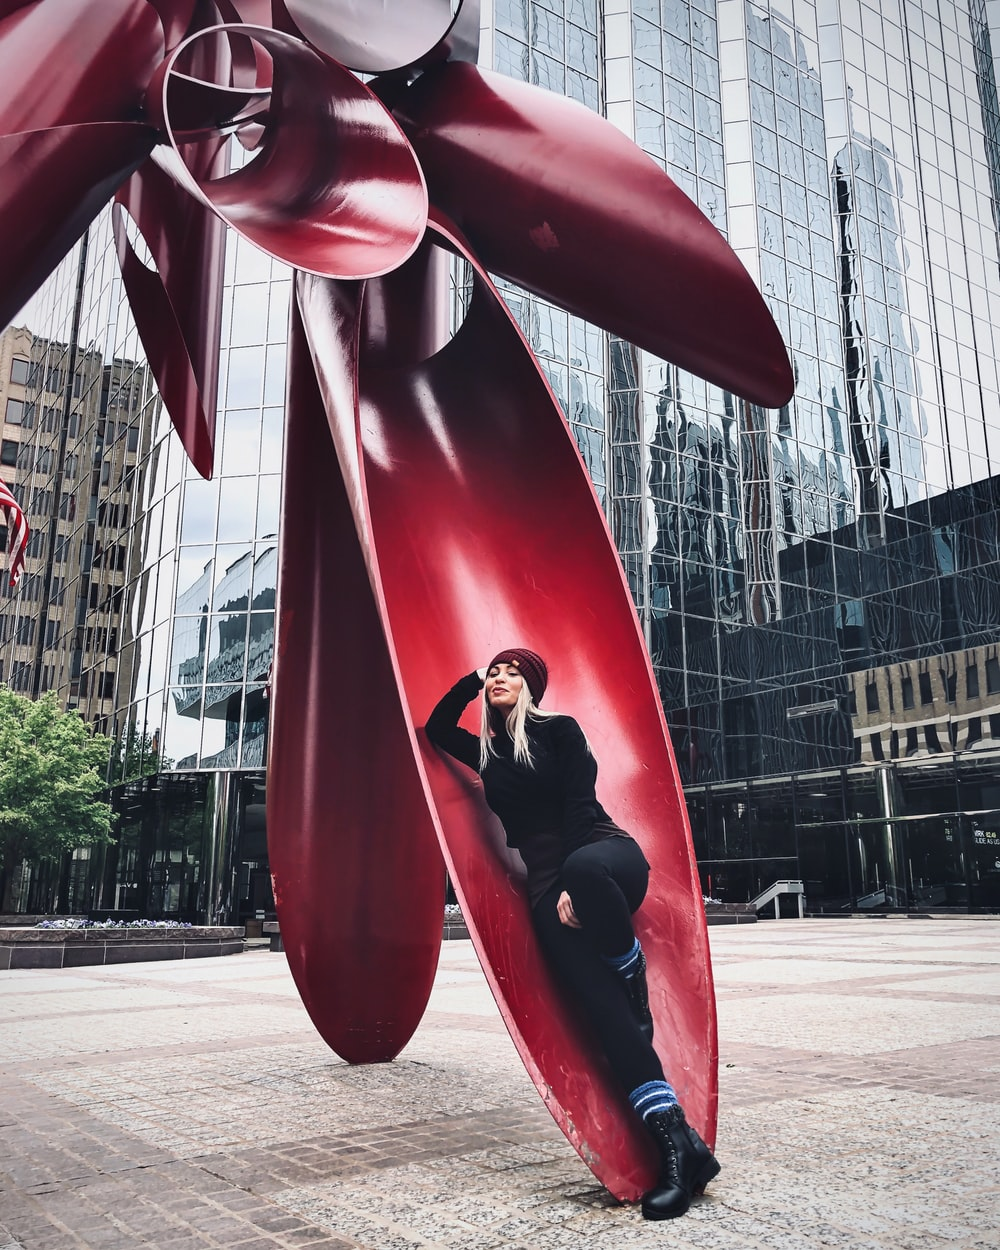 red and black statue near building during daytime